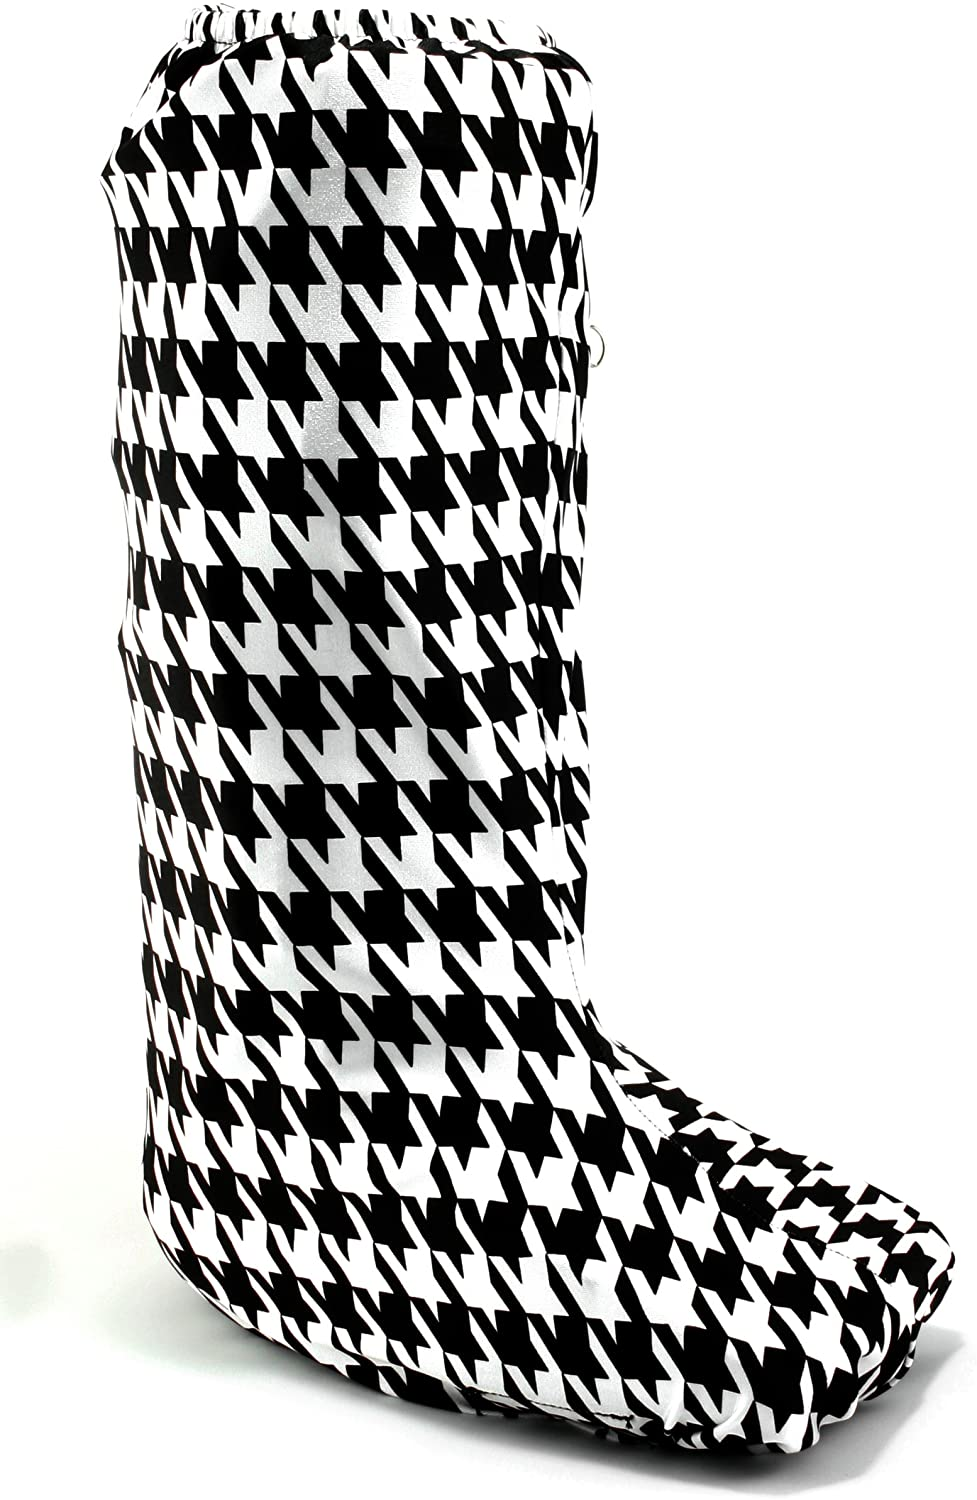 My Recovers Walking Boot Cover for Fracture Boot, Fashion Cover in Houndstooth, Tall Boot, Made in USA, Orthopedic Products Accessories (MD)